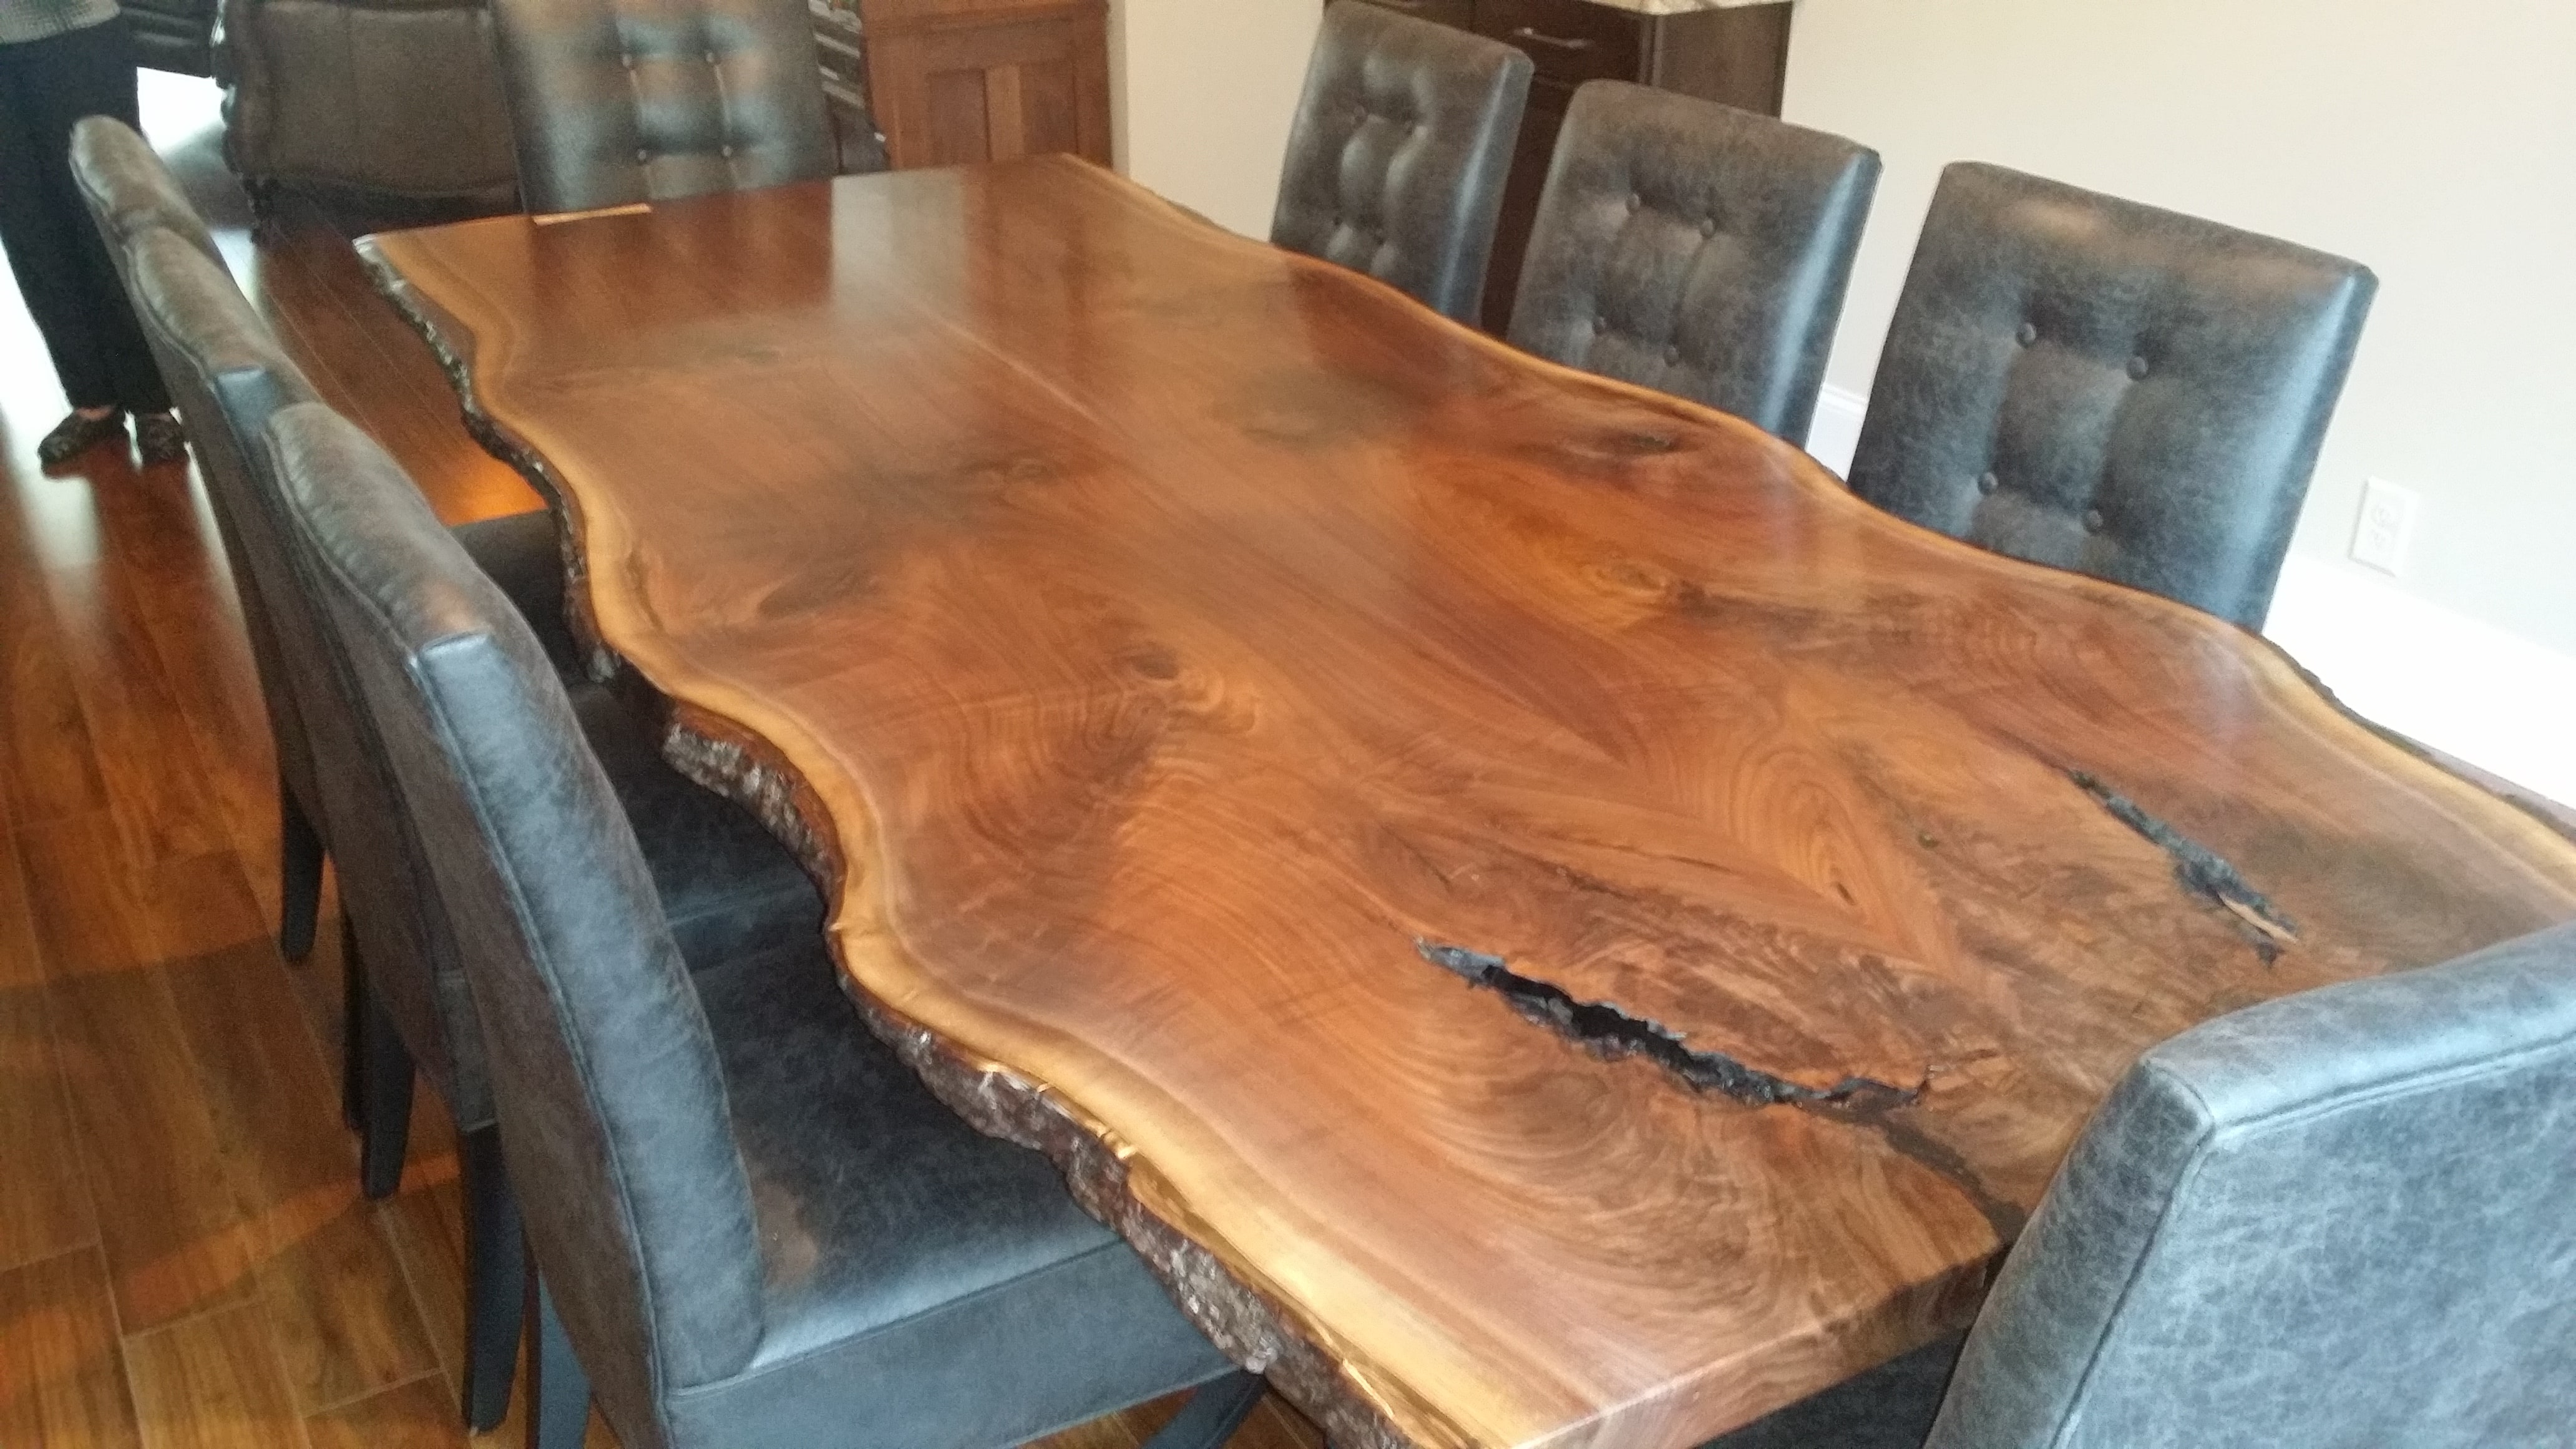 Contact Mumford Restoration for professional office furniture restoration and repair.